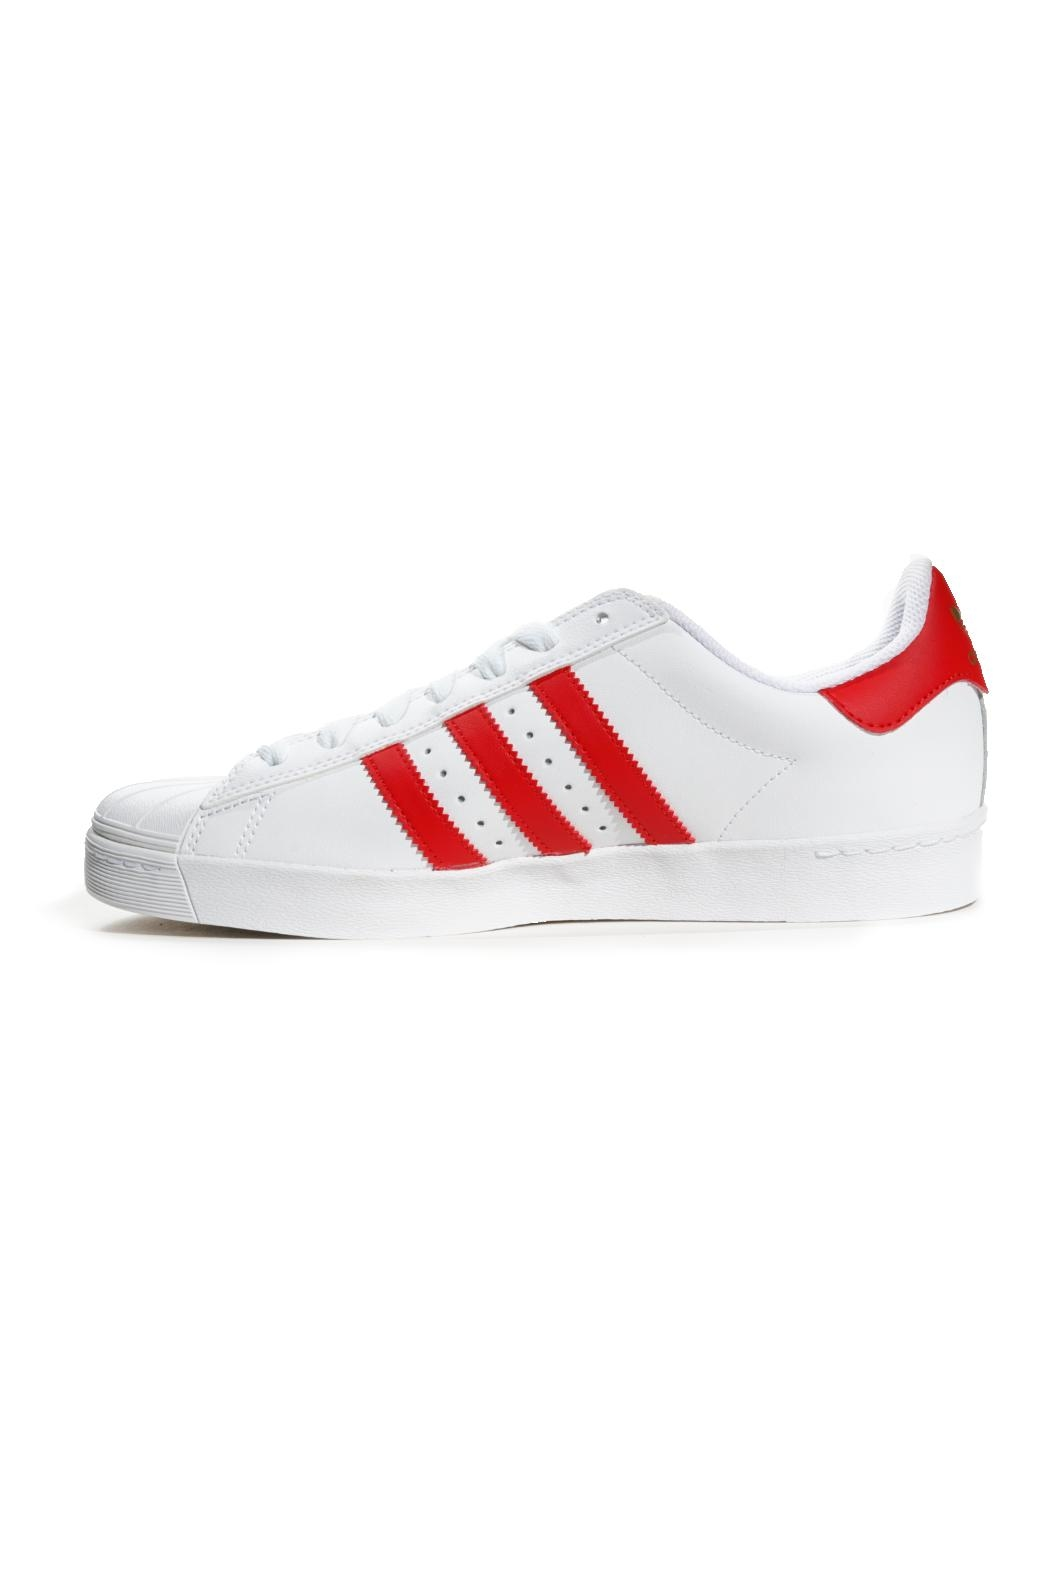 adidas White/red Superstar Adidas - Front Full Image